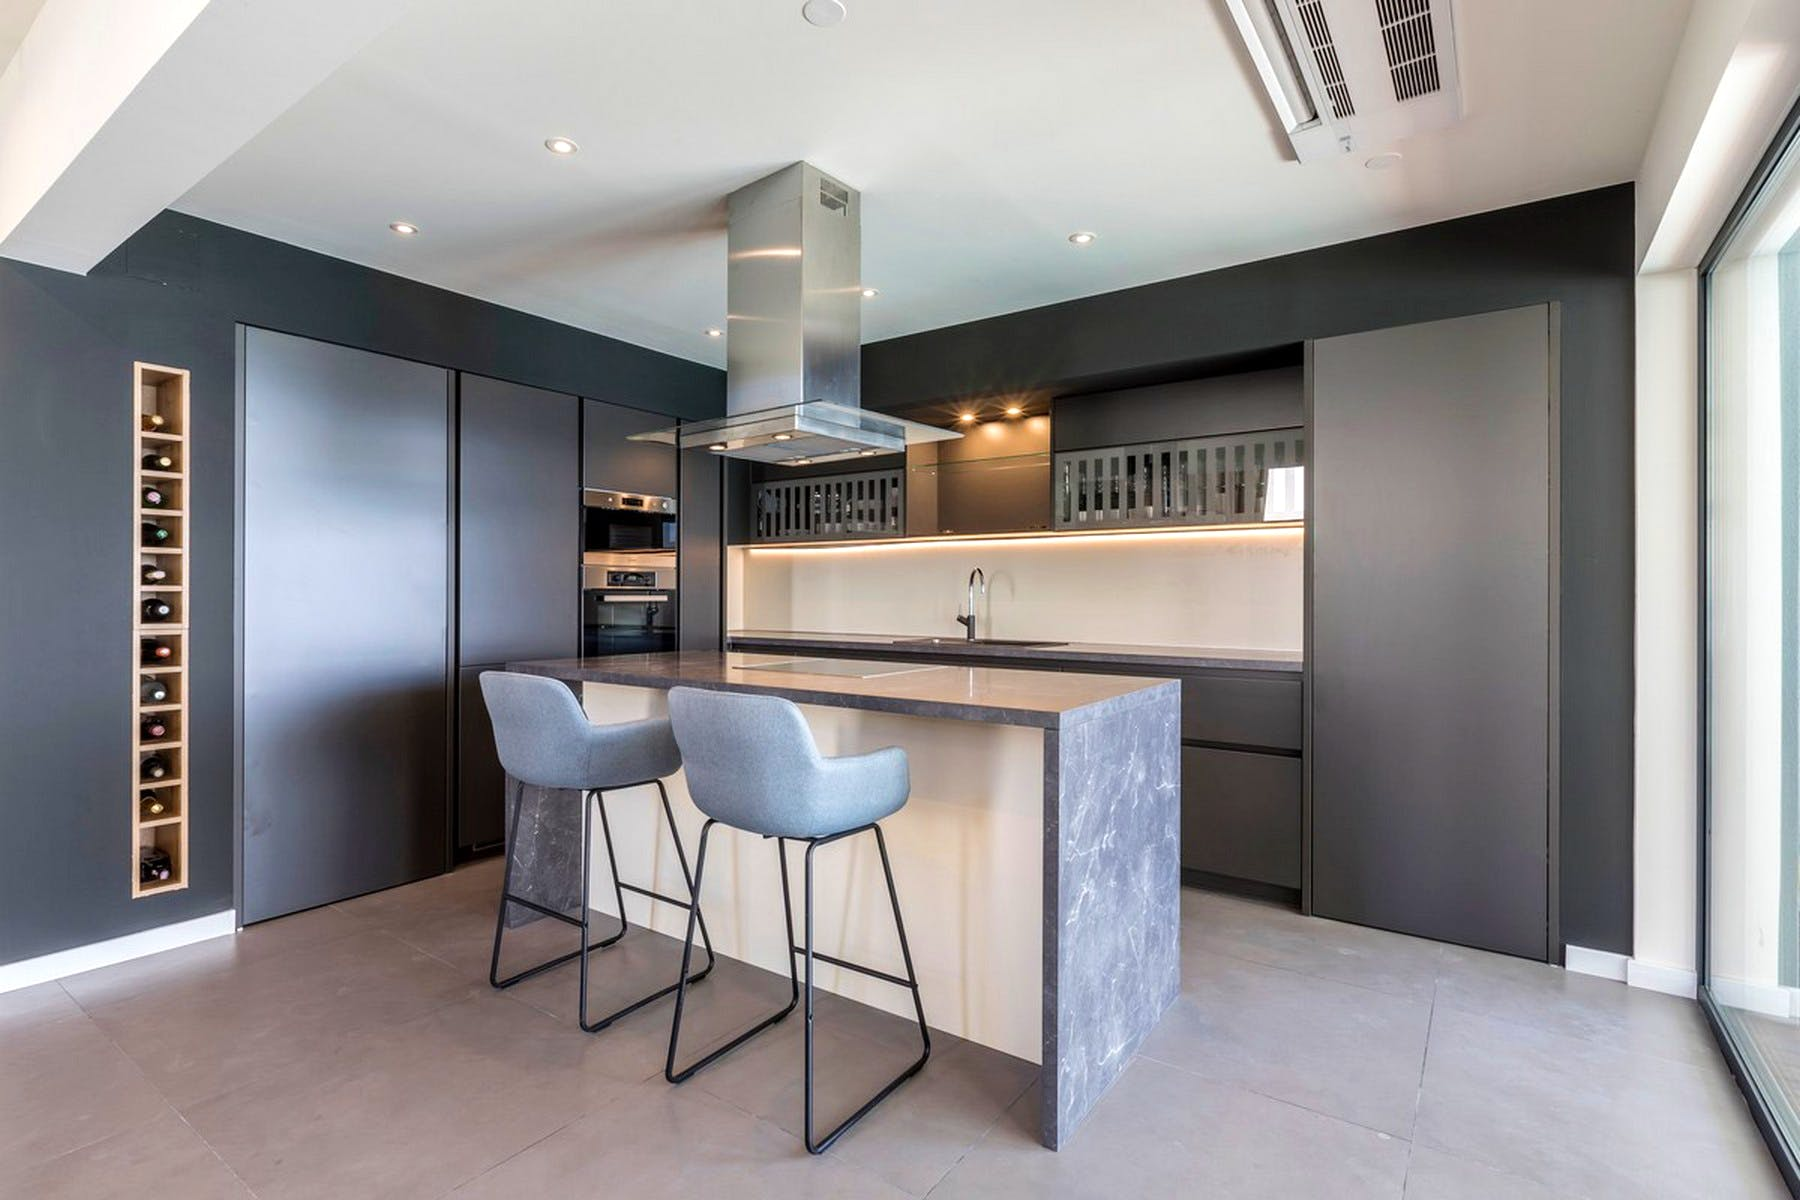 Modernly equipped kitchen